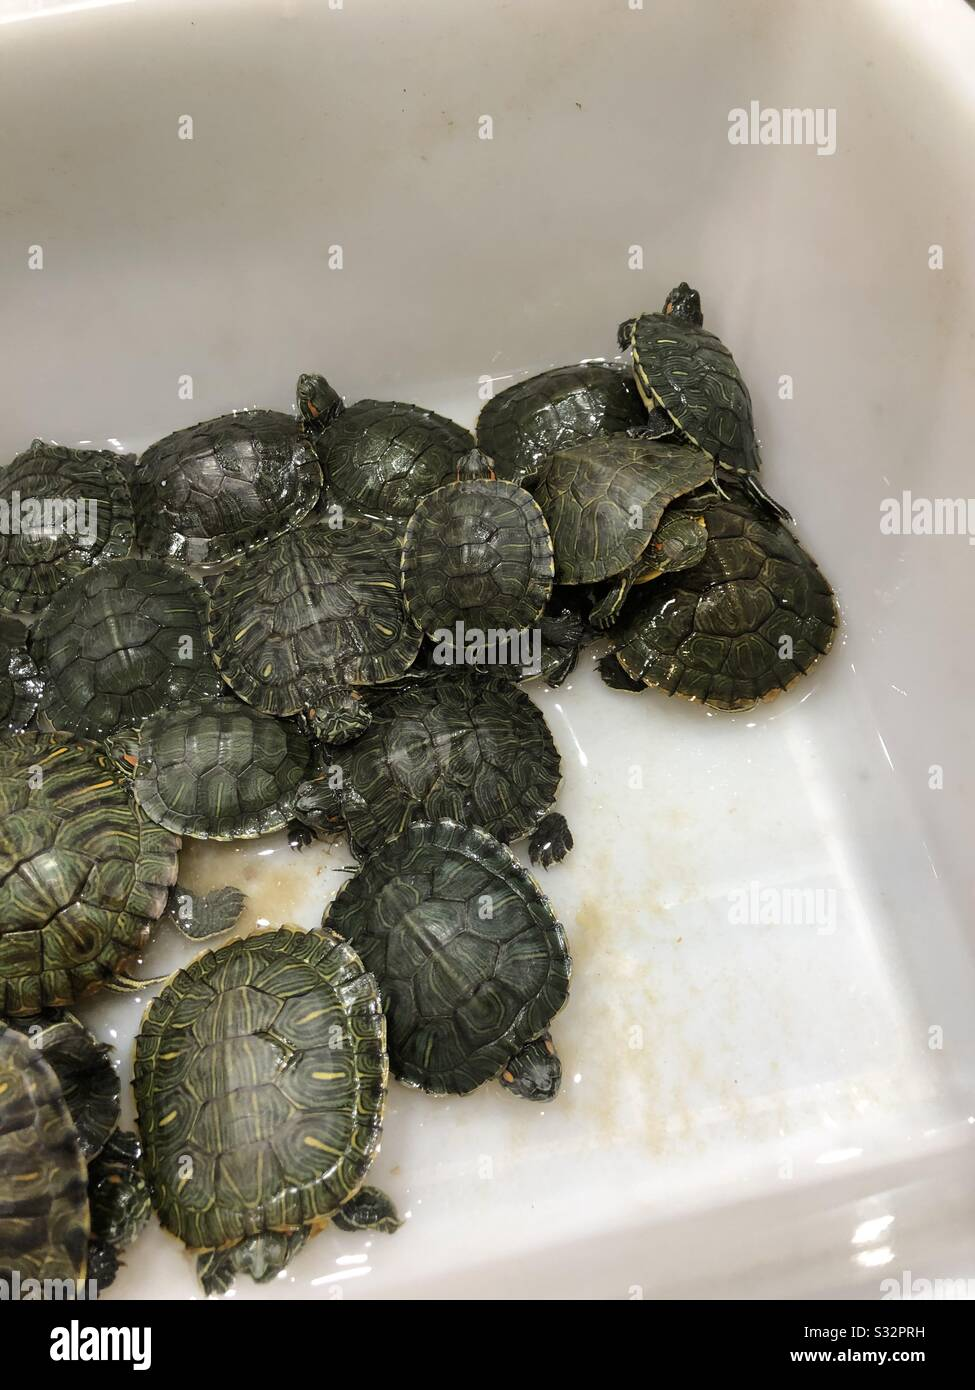 A Lot Of Little Cute Pet Turtles Waiting For Their Owner To Buy Them Stock Photo Alamy